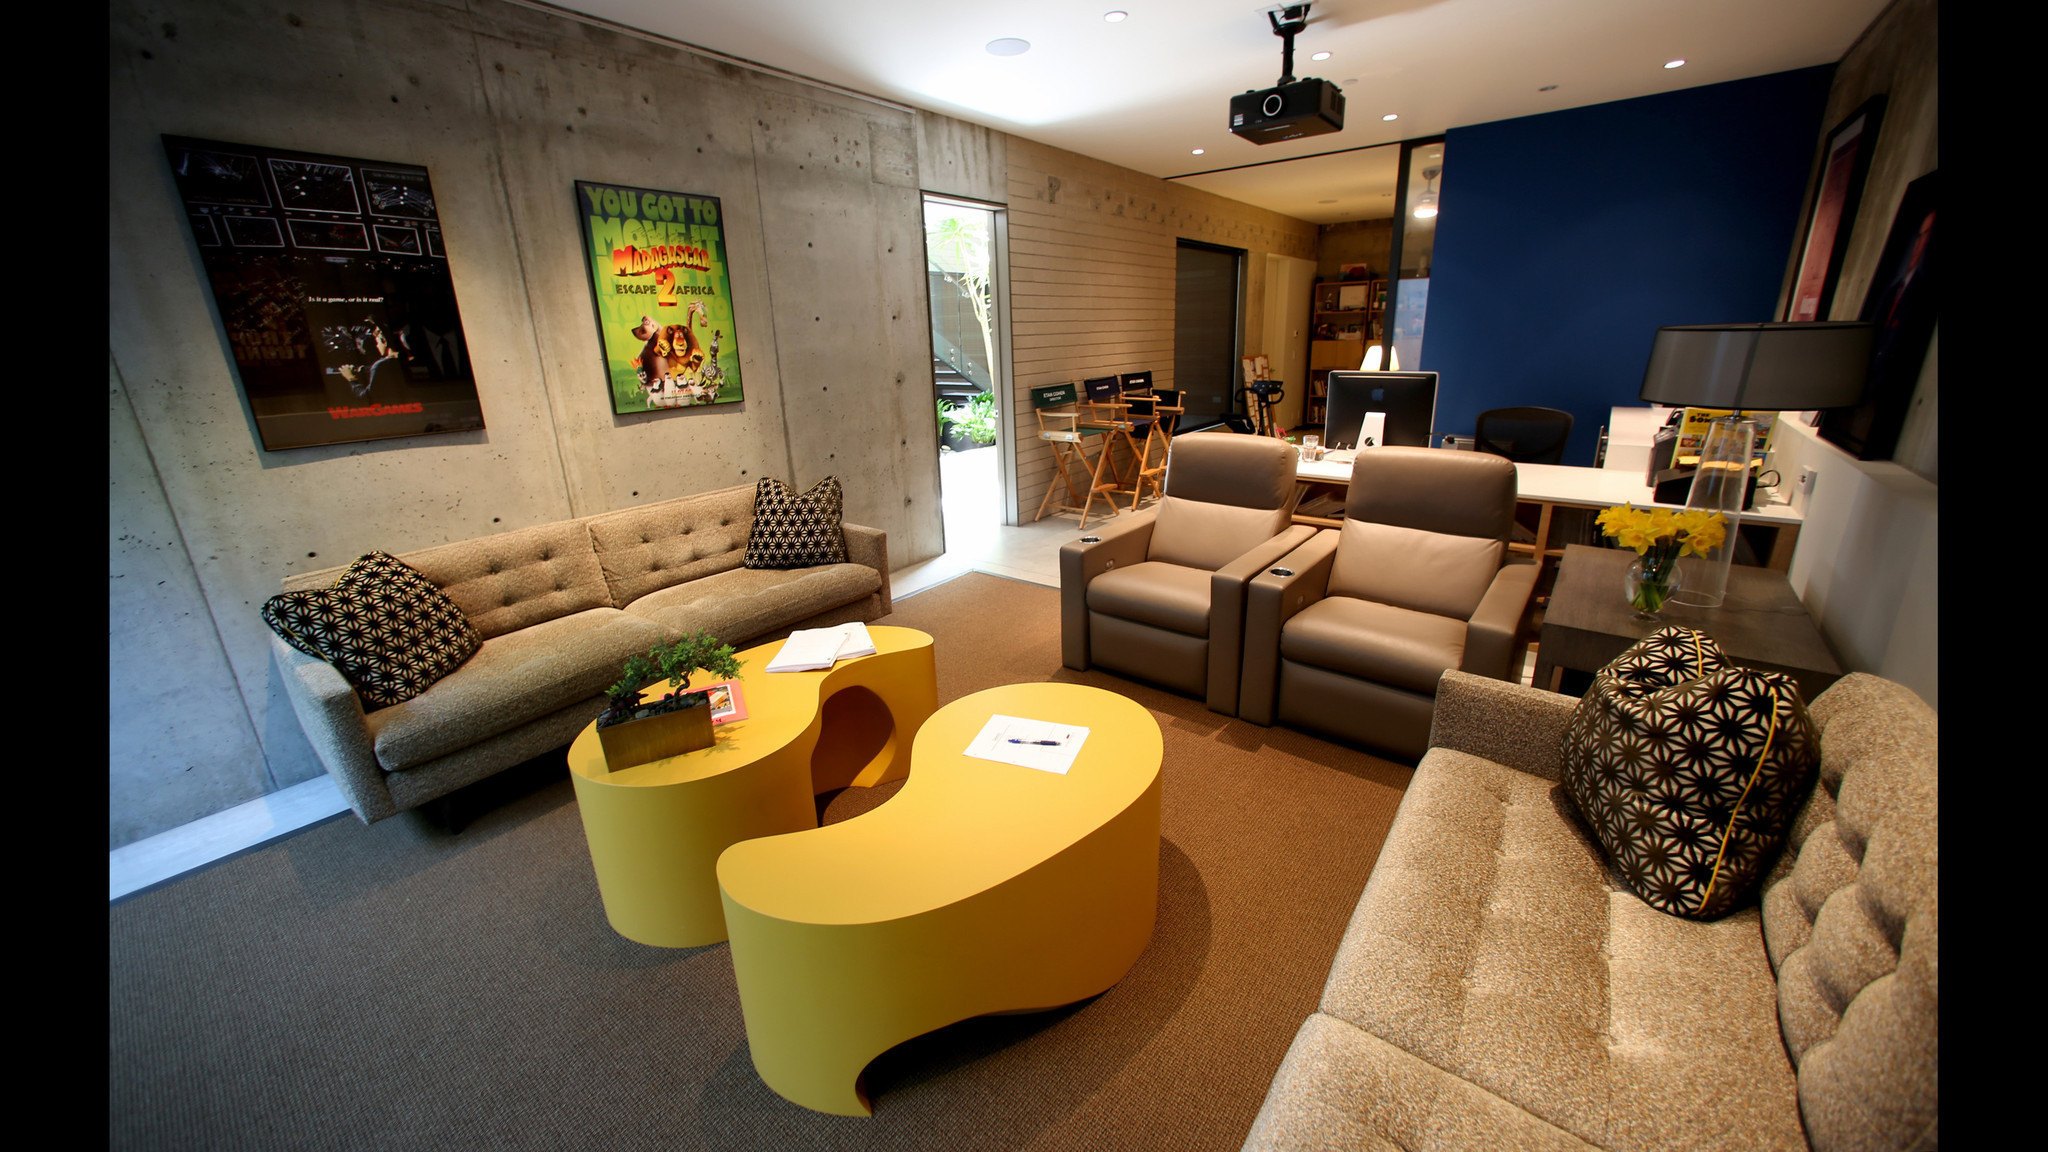 Basements The Underground Trend In Adding Space To Homes LA Times - Digging basement cost